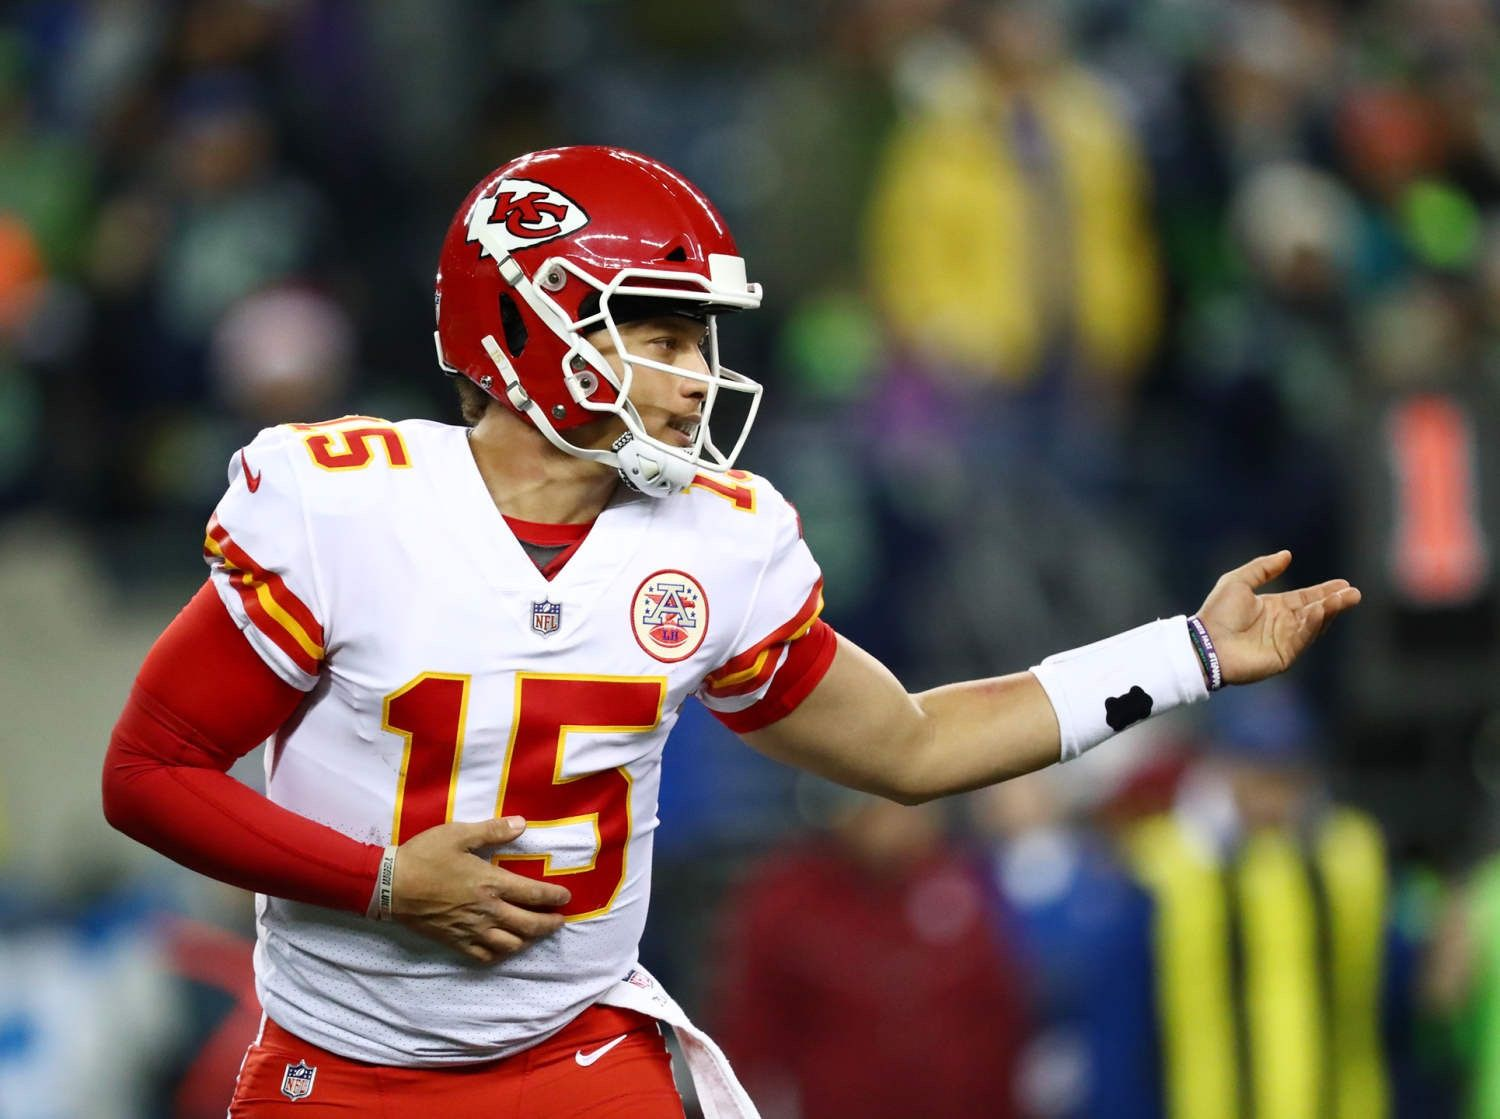 Pin by Zoster 17 on PATRICK MAHOMES Kansas city chiefs